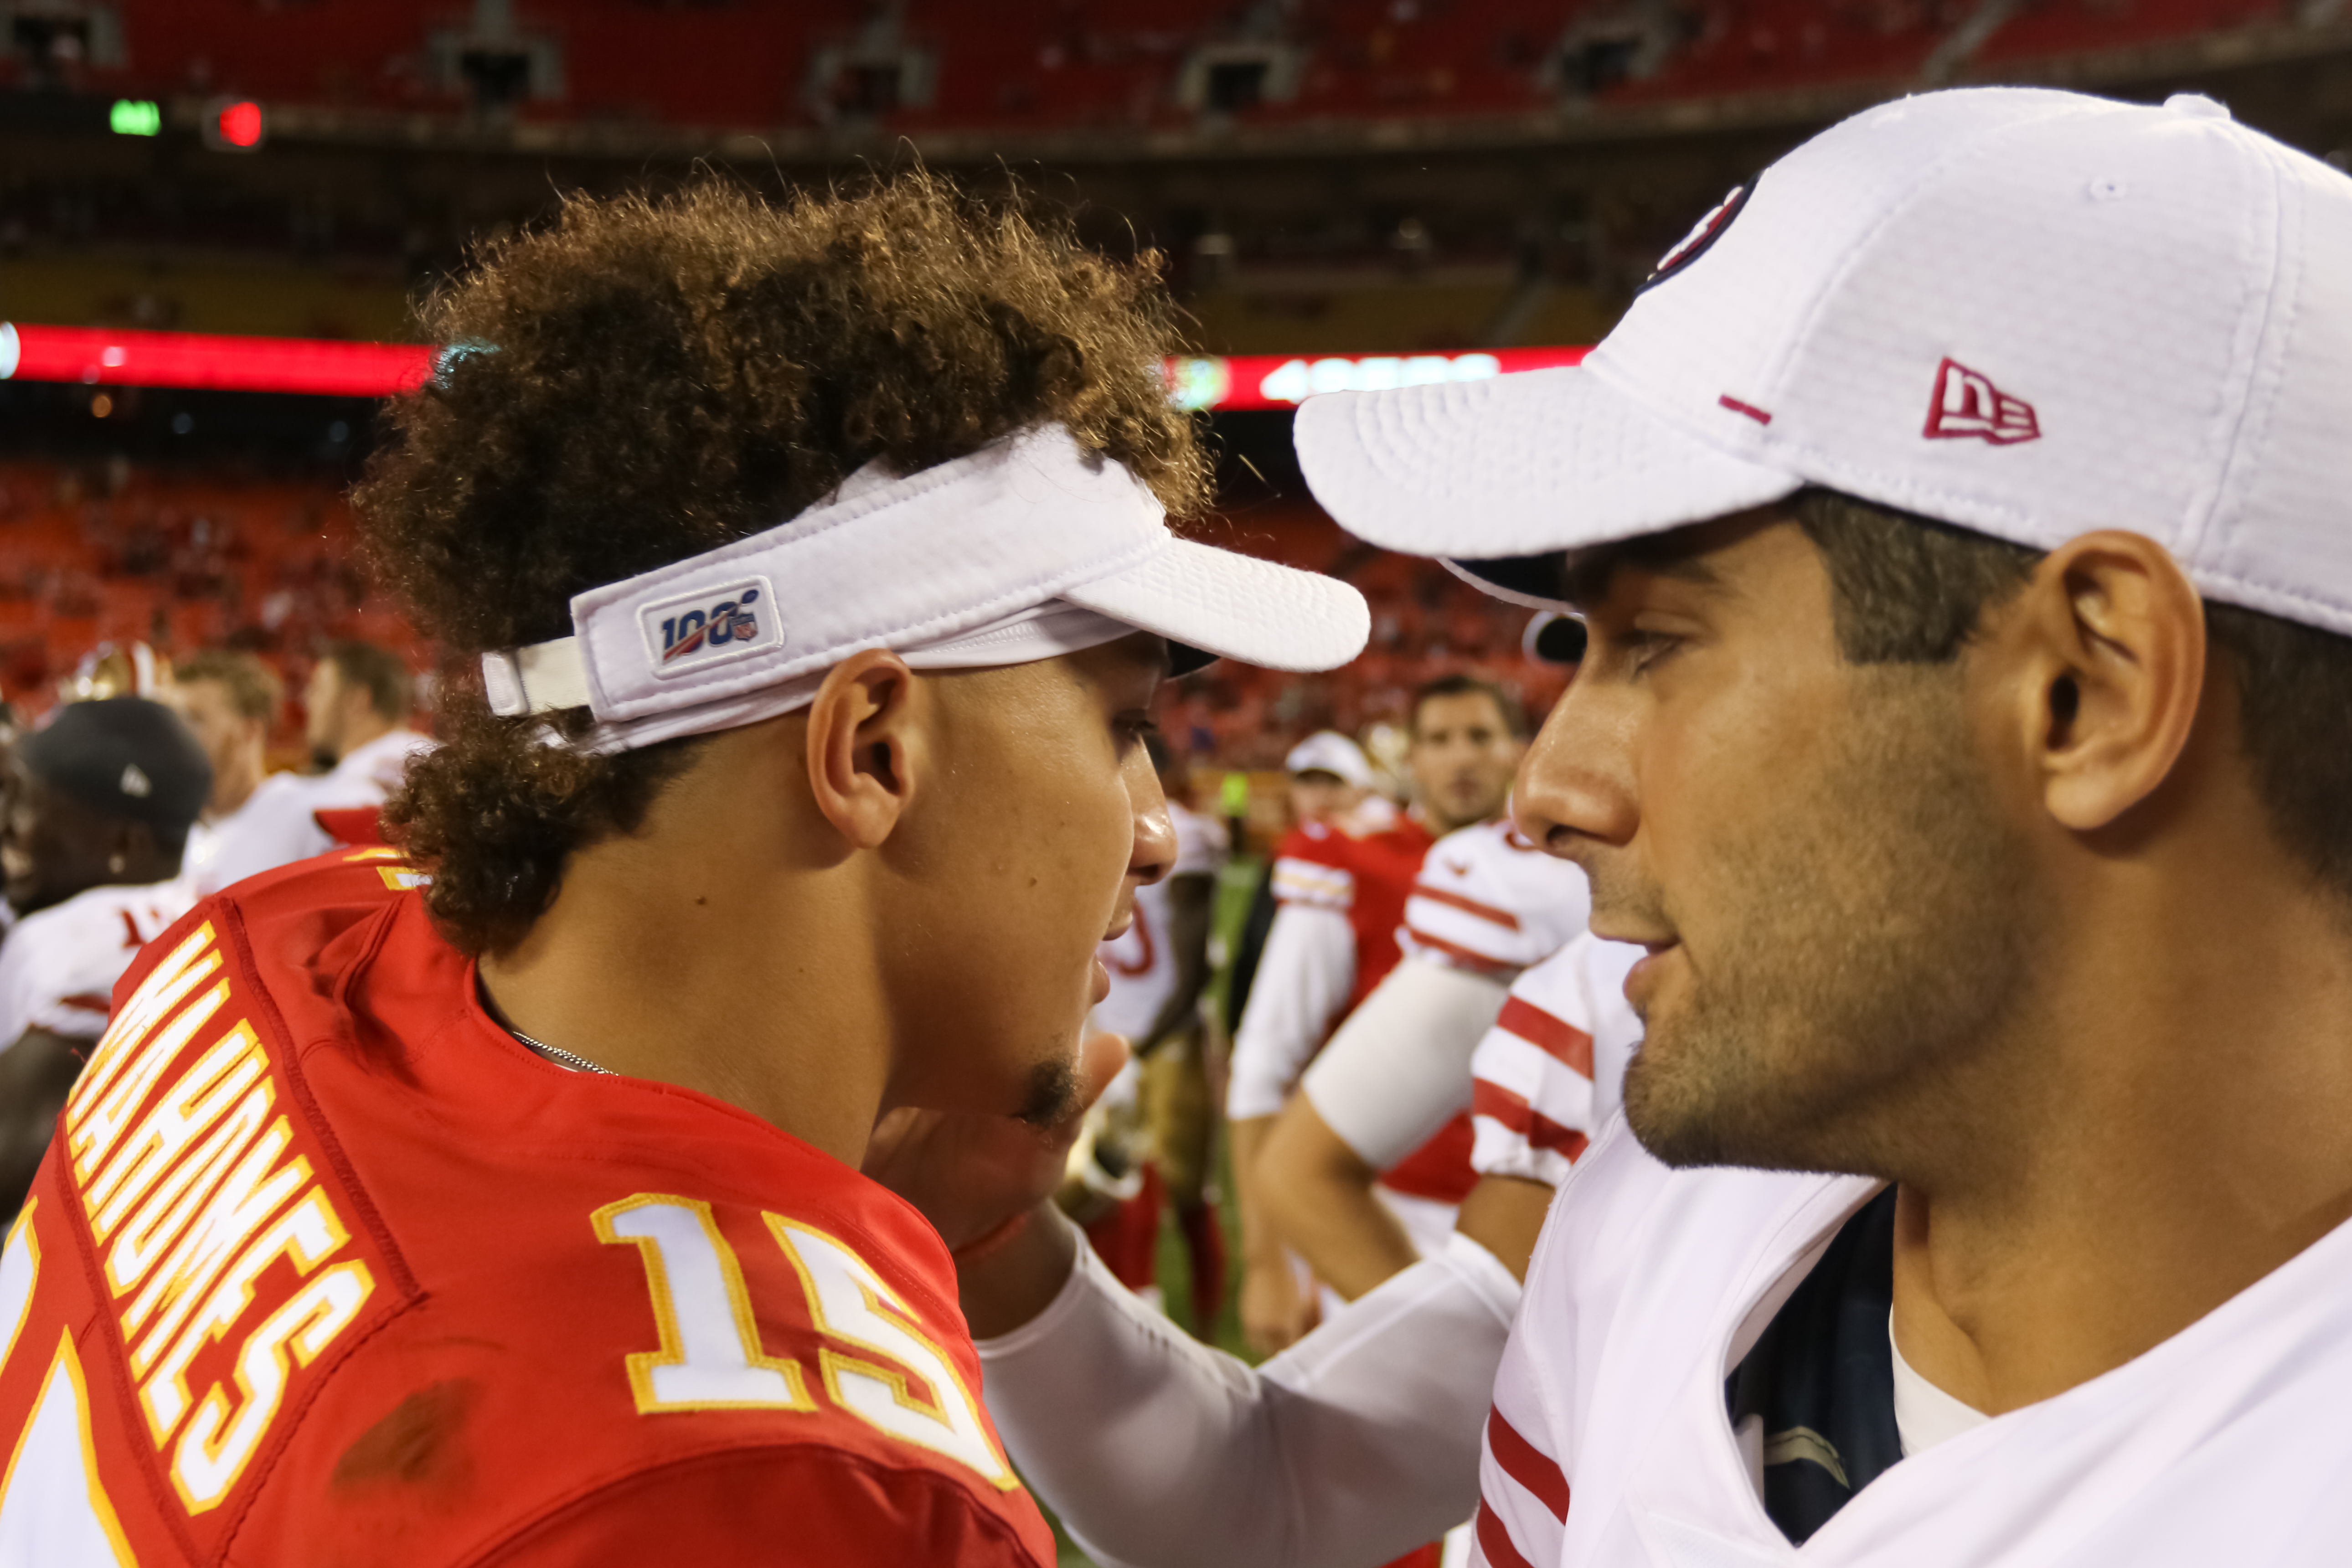 Kansas City Chiefs quarterback Patrick Mahomes and San Francisco 49ers quarterback Jimmy Garoppolo exchange a handshake and words after an NFL preseason game between the San Francisco 49ers and Kansas City Chiefs on August 24, 2019 at Arrowhead Stadium in Kansas City, MO.